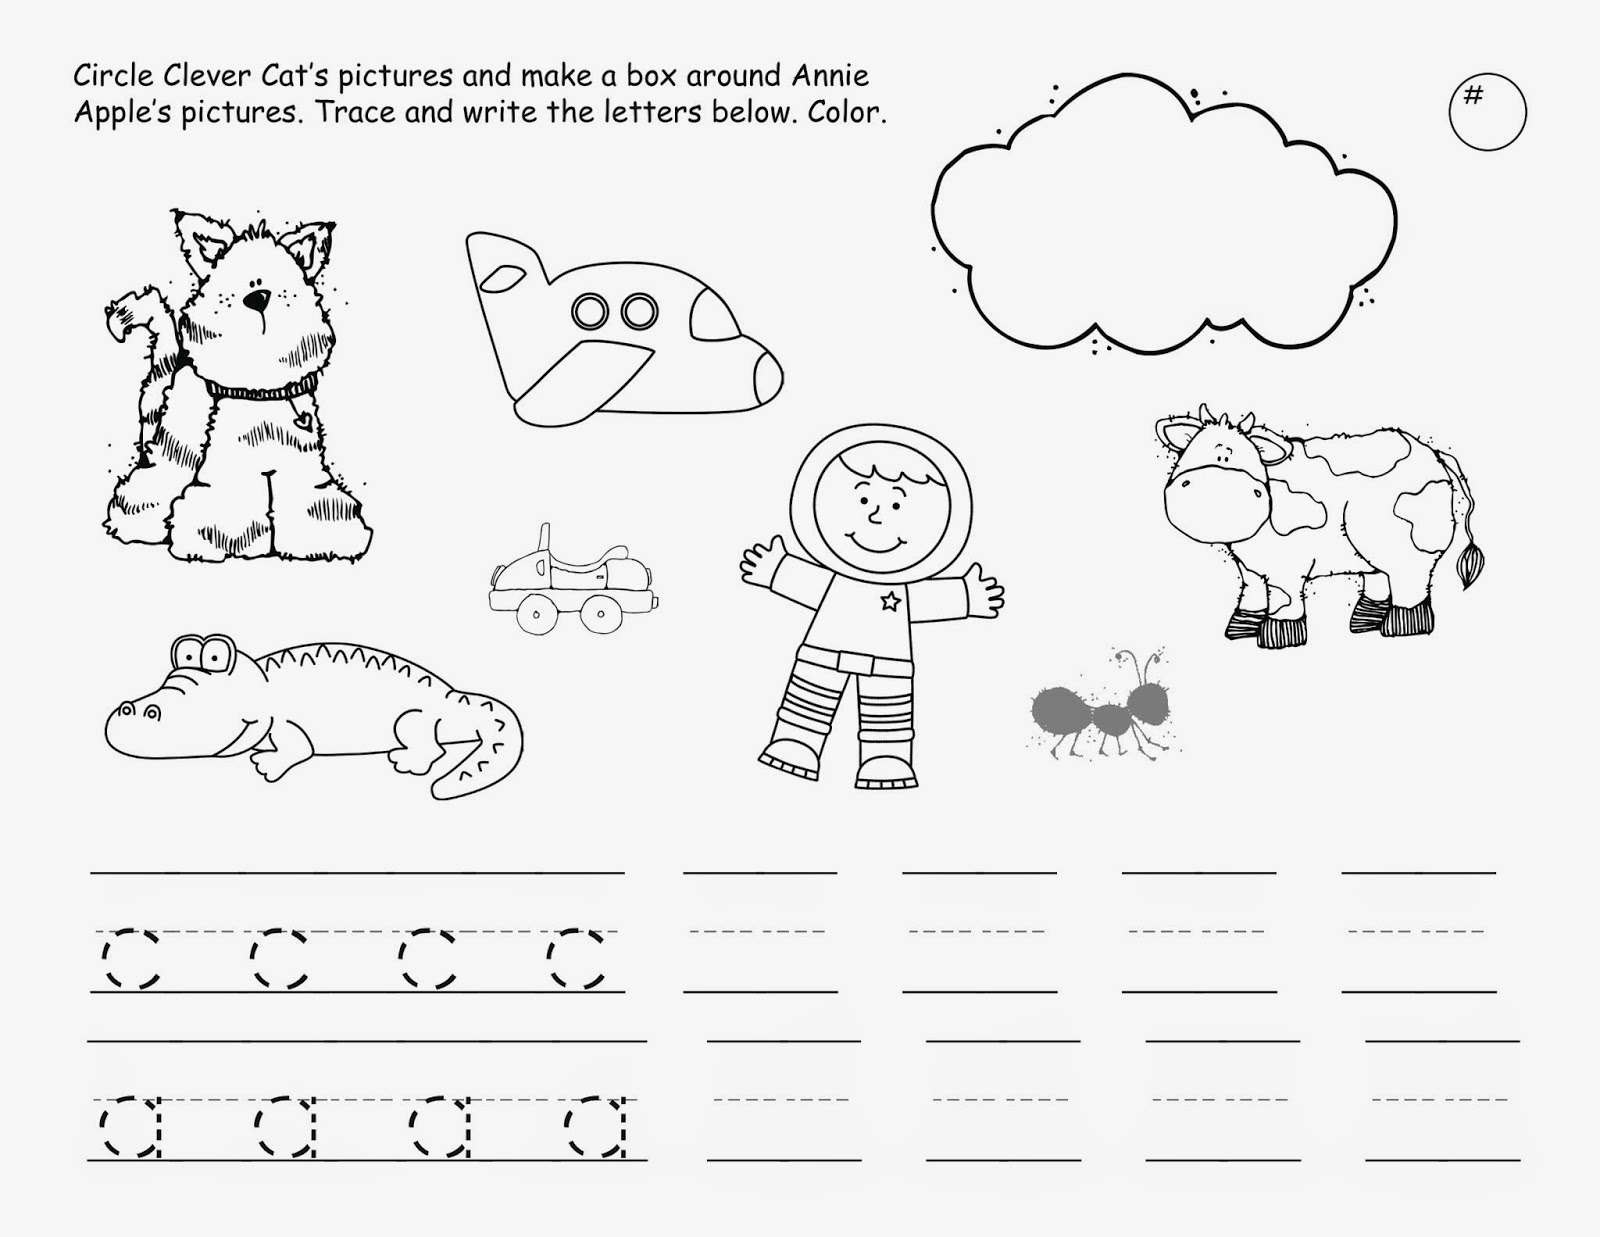 Worksheets Worksheet On Letter Land Song teaching by the sea letterland there is no better land